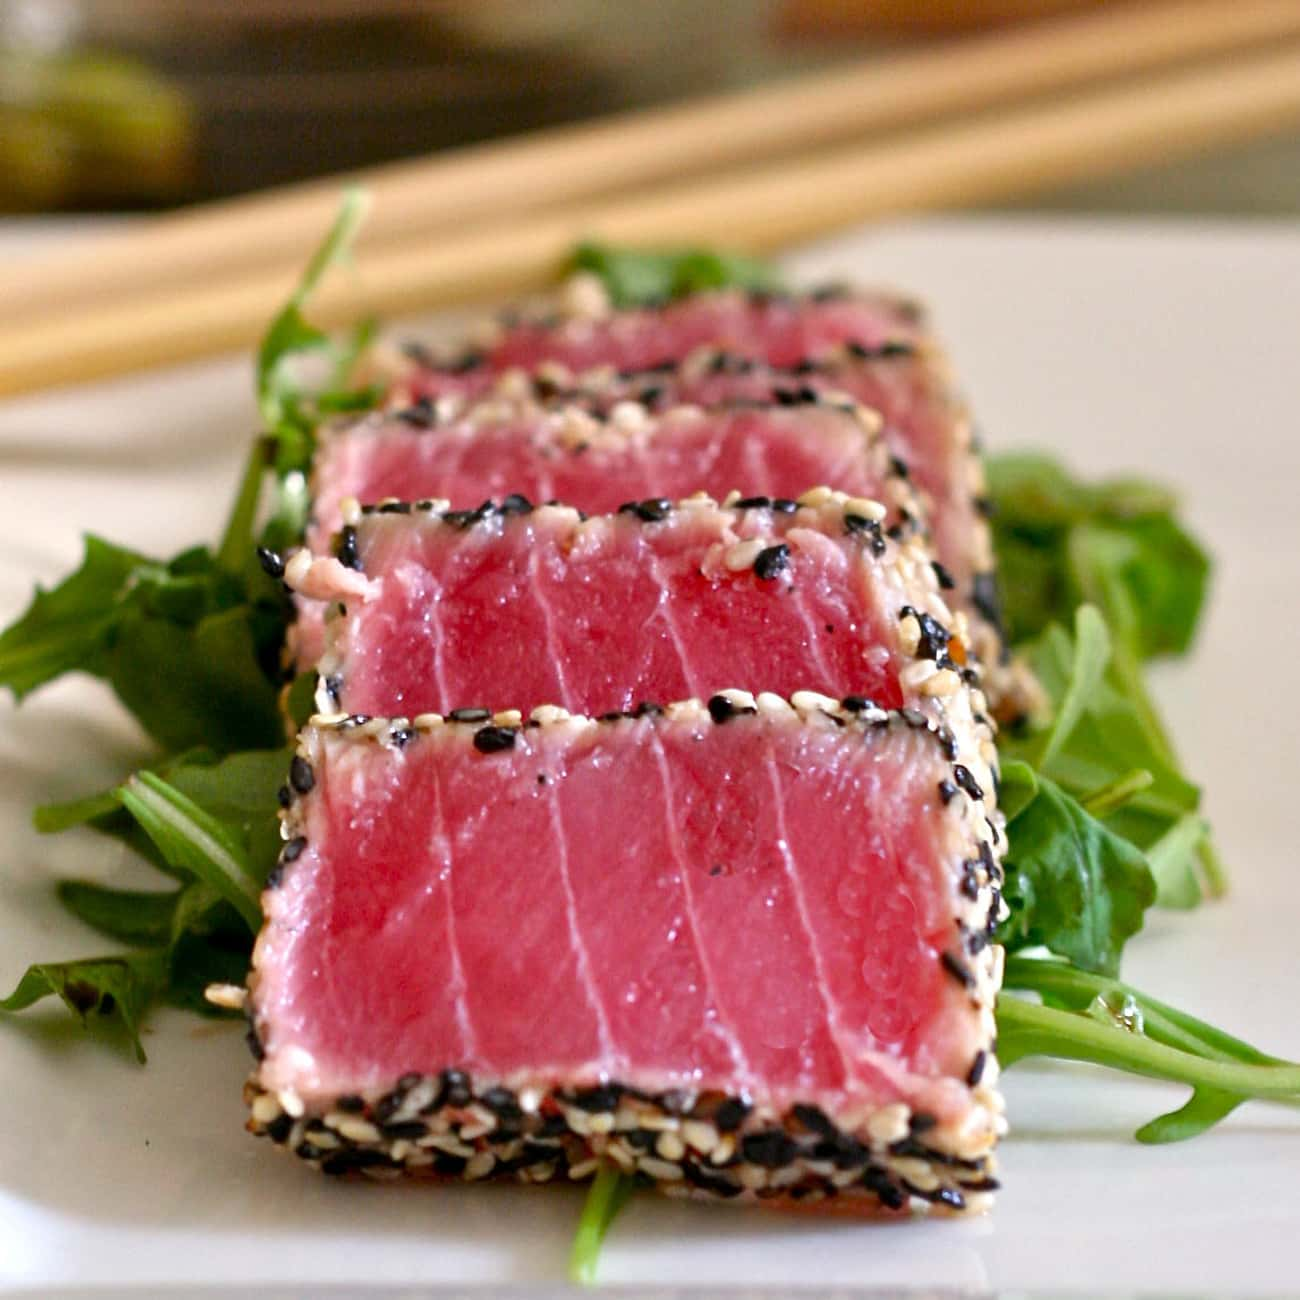 Tuna can cause mercury poisoining